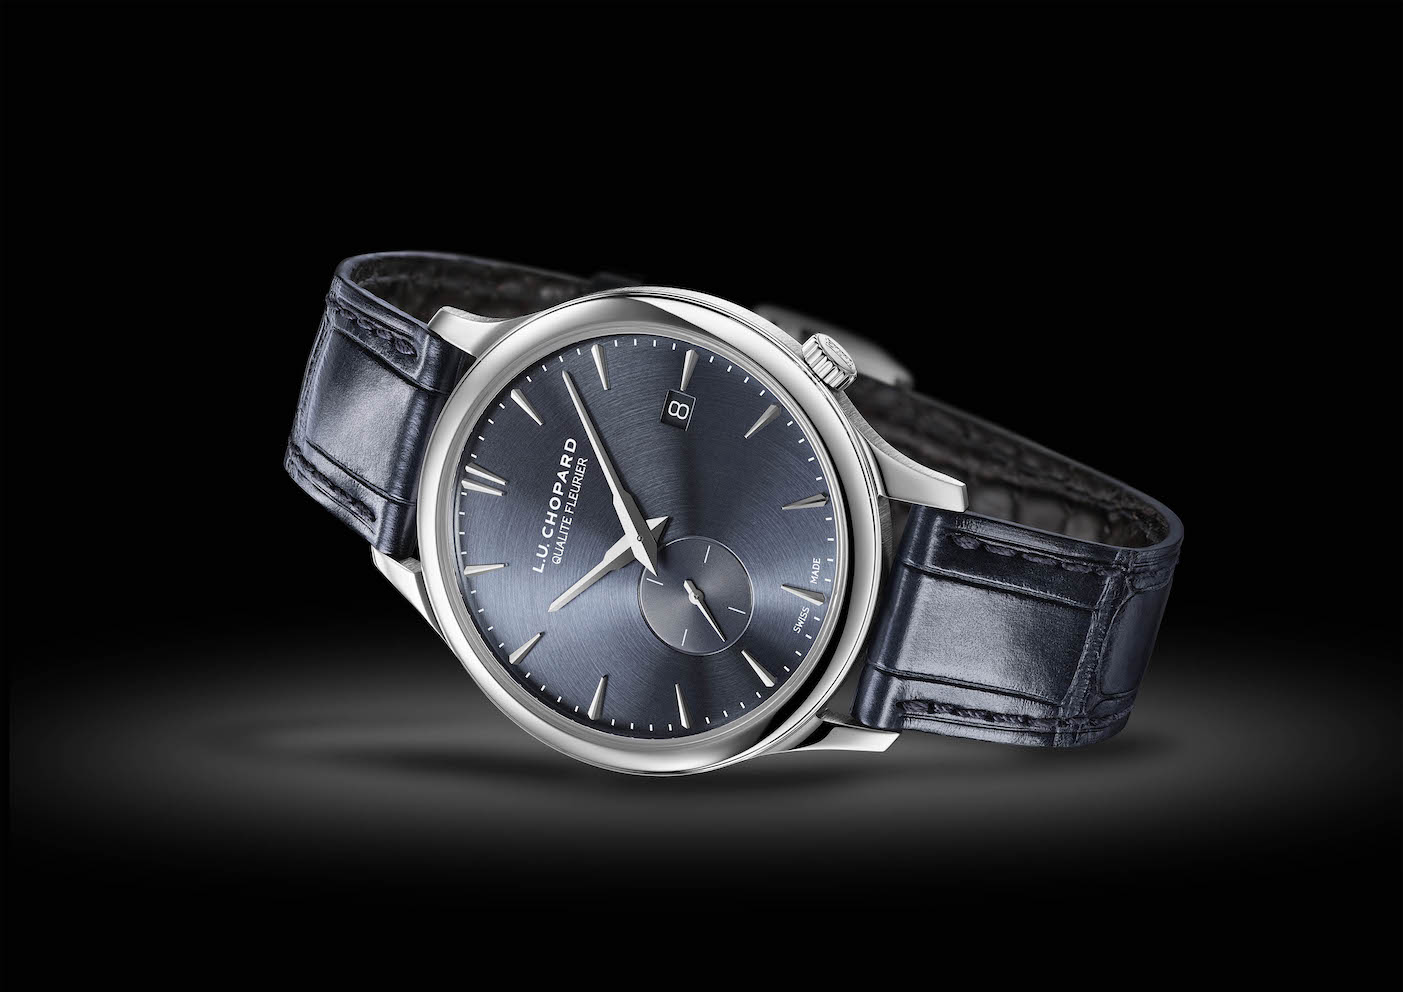 The Chopard 2019 L.U. C XPS Twist QF